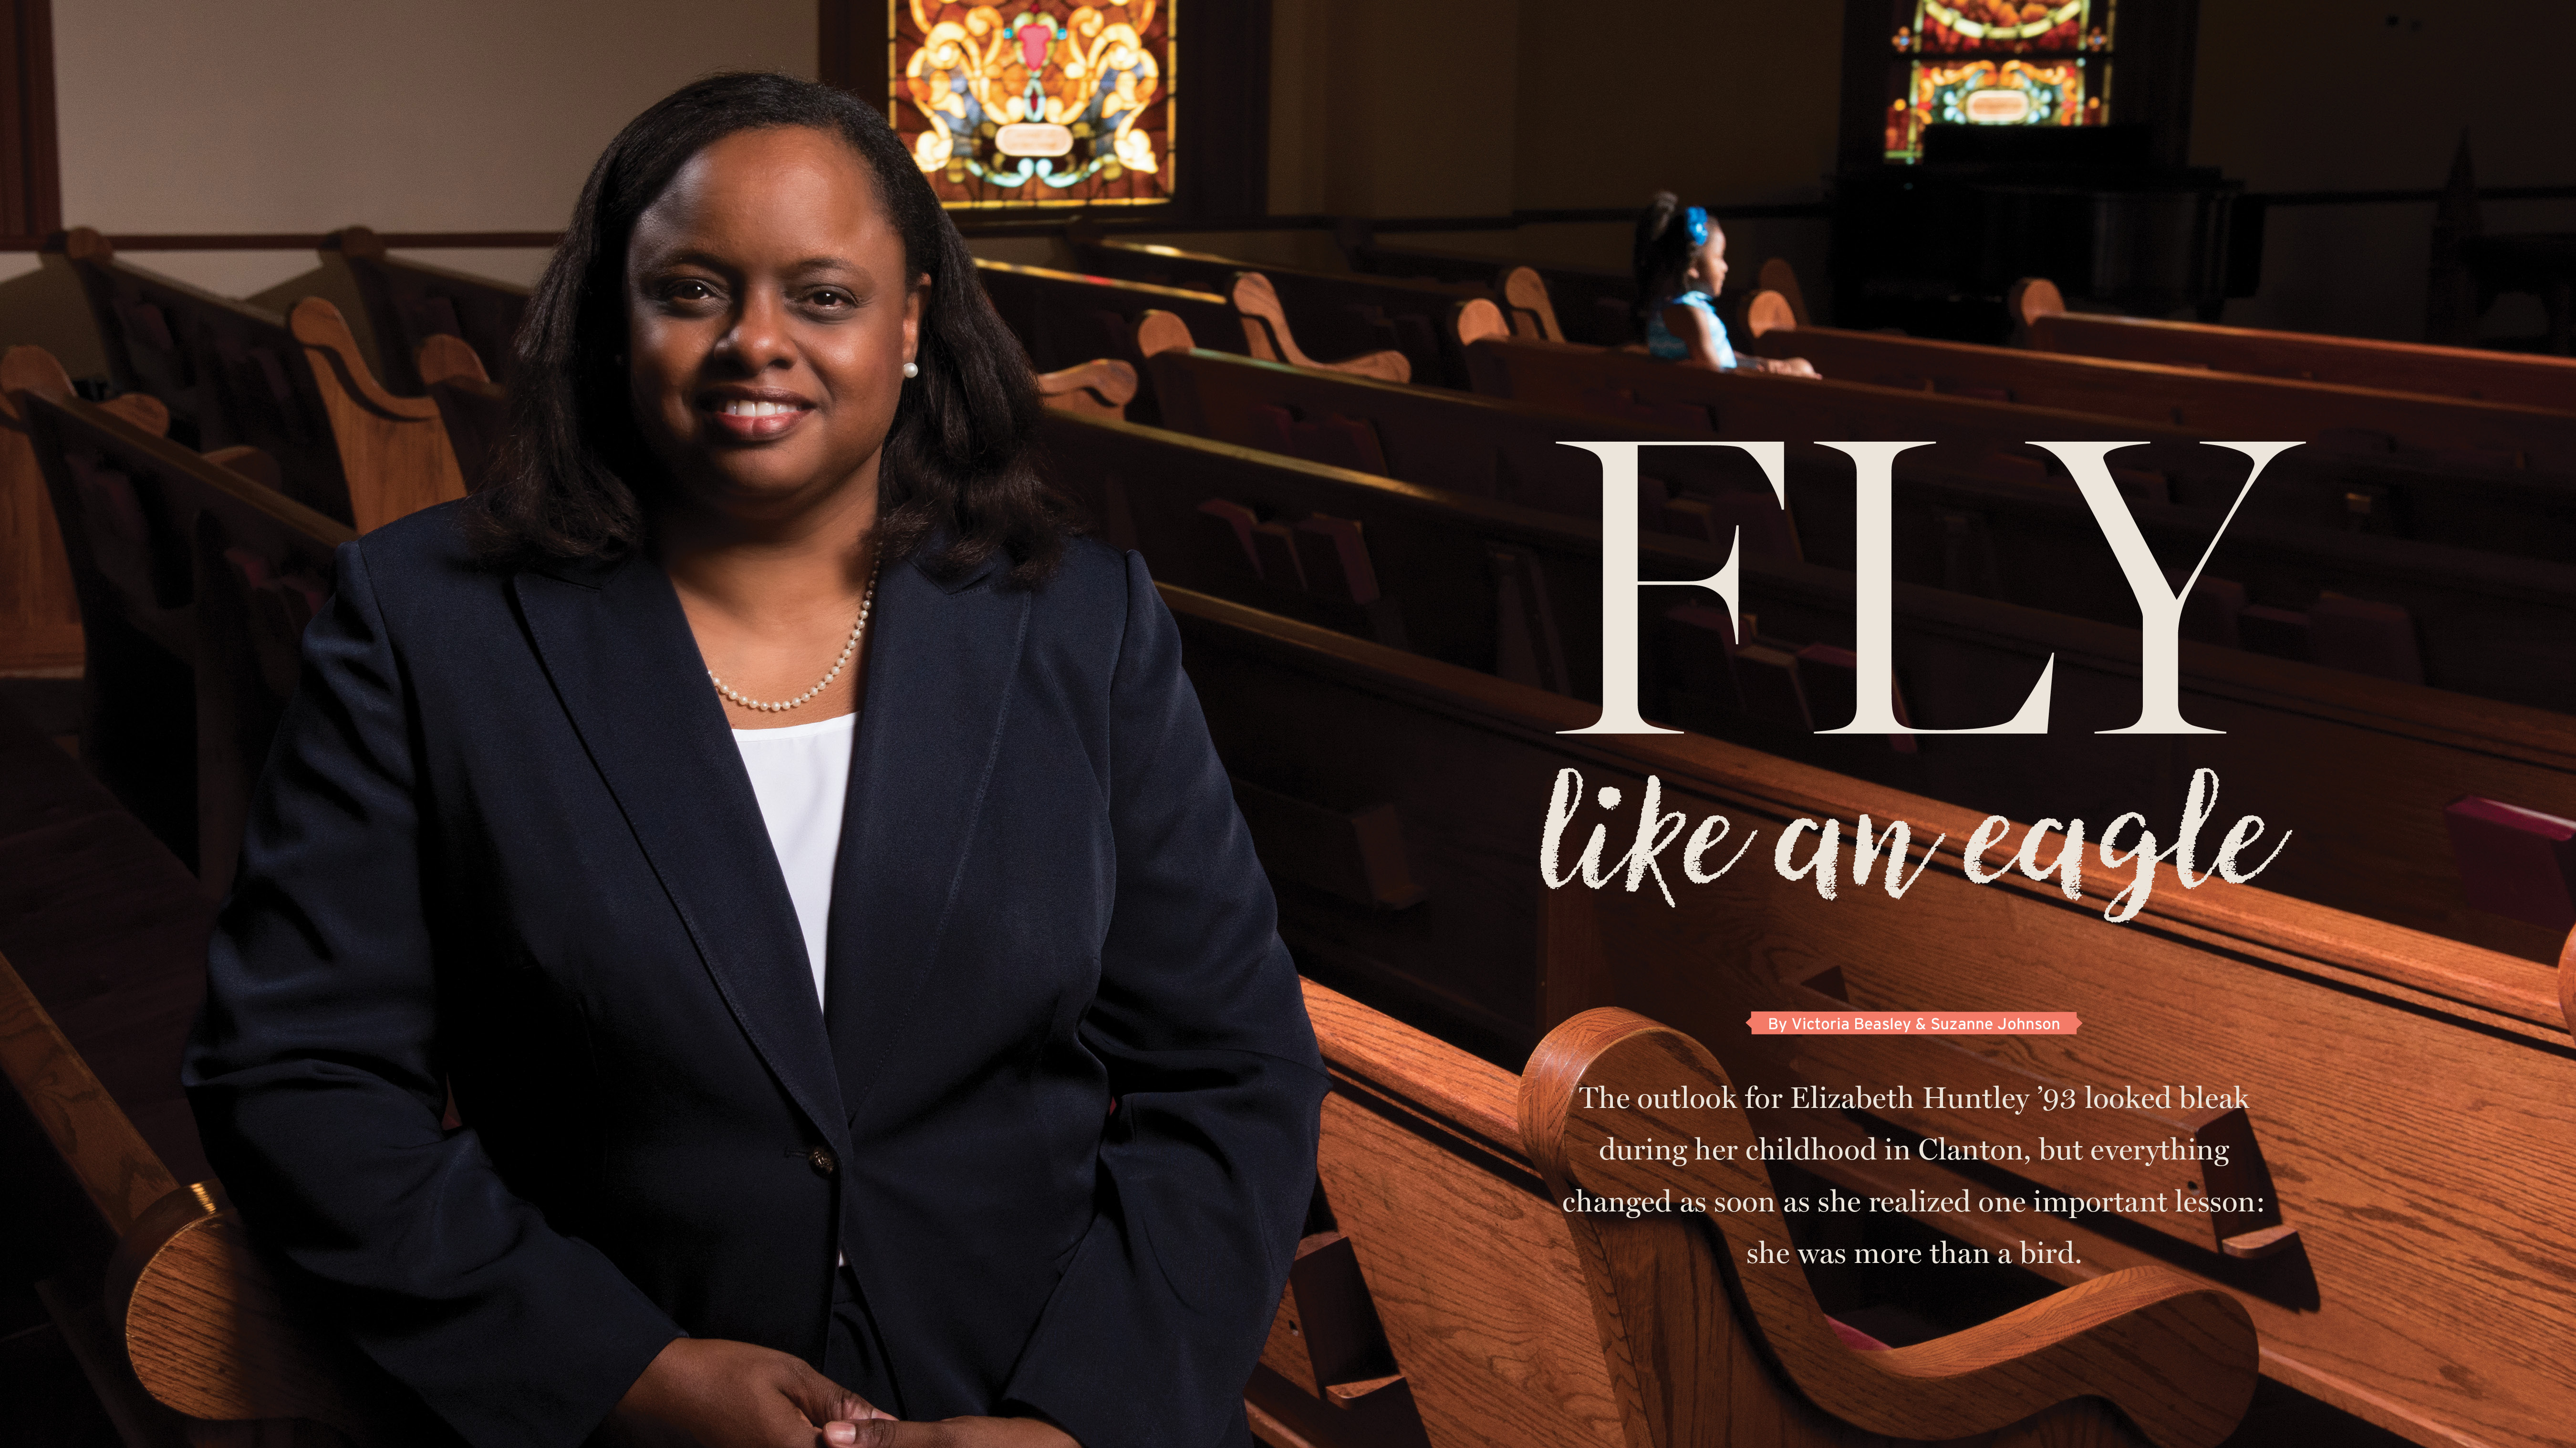 Fly Like an Eagle by Victoria Beasley & Suzanne Johnson; The outlook for Elizabeth Huntley '93 looked bleak during her childhood in Clanton, but everything changed as soon as she realized one important lesson: she was more than a bird.